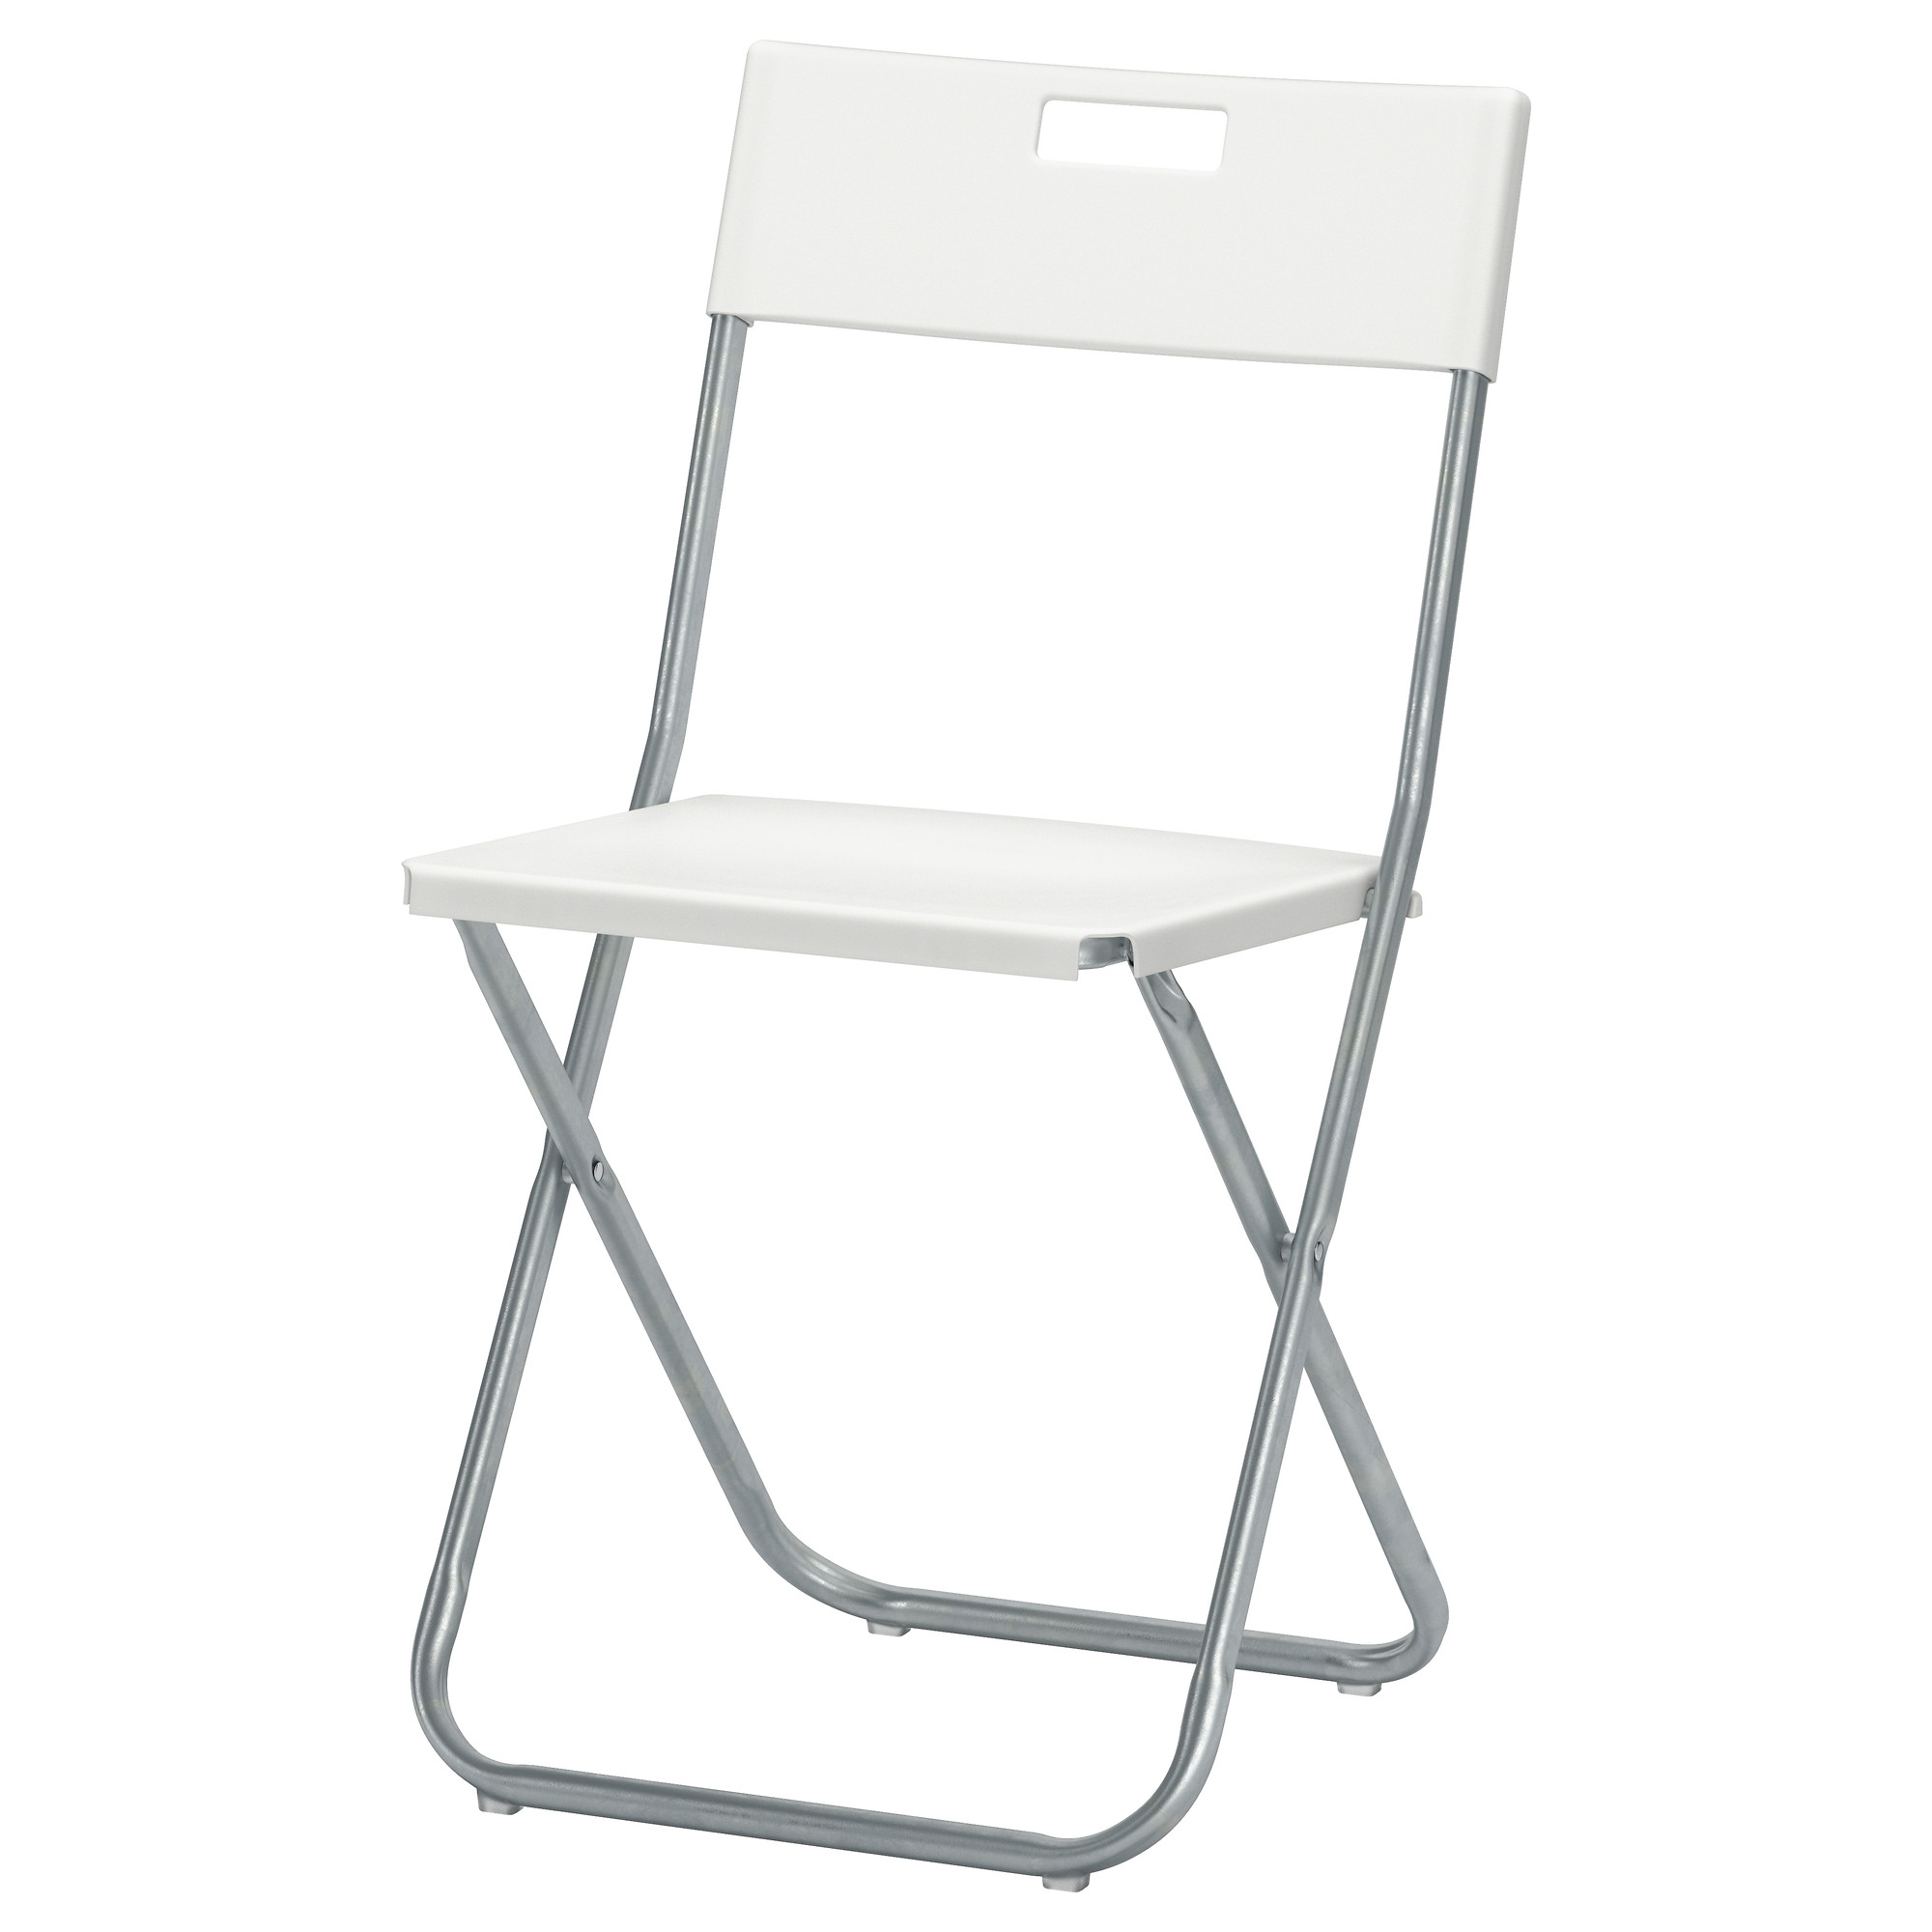 Soft Folding Chairs Gunde Folding Chair